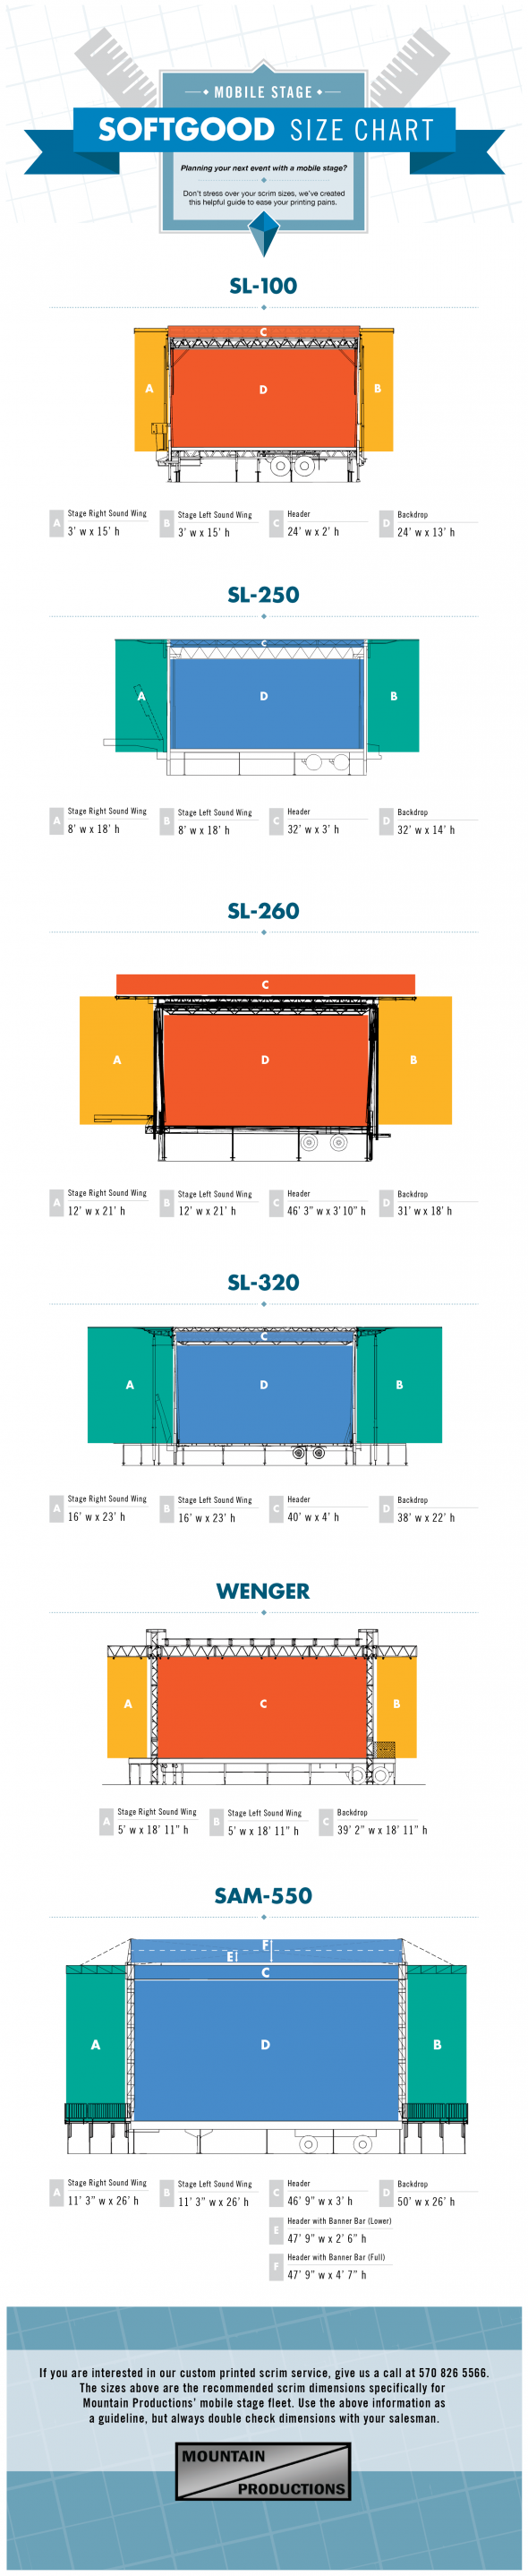 Mobile Stage Softgood Sizes